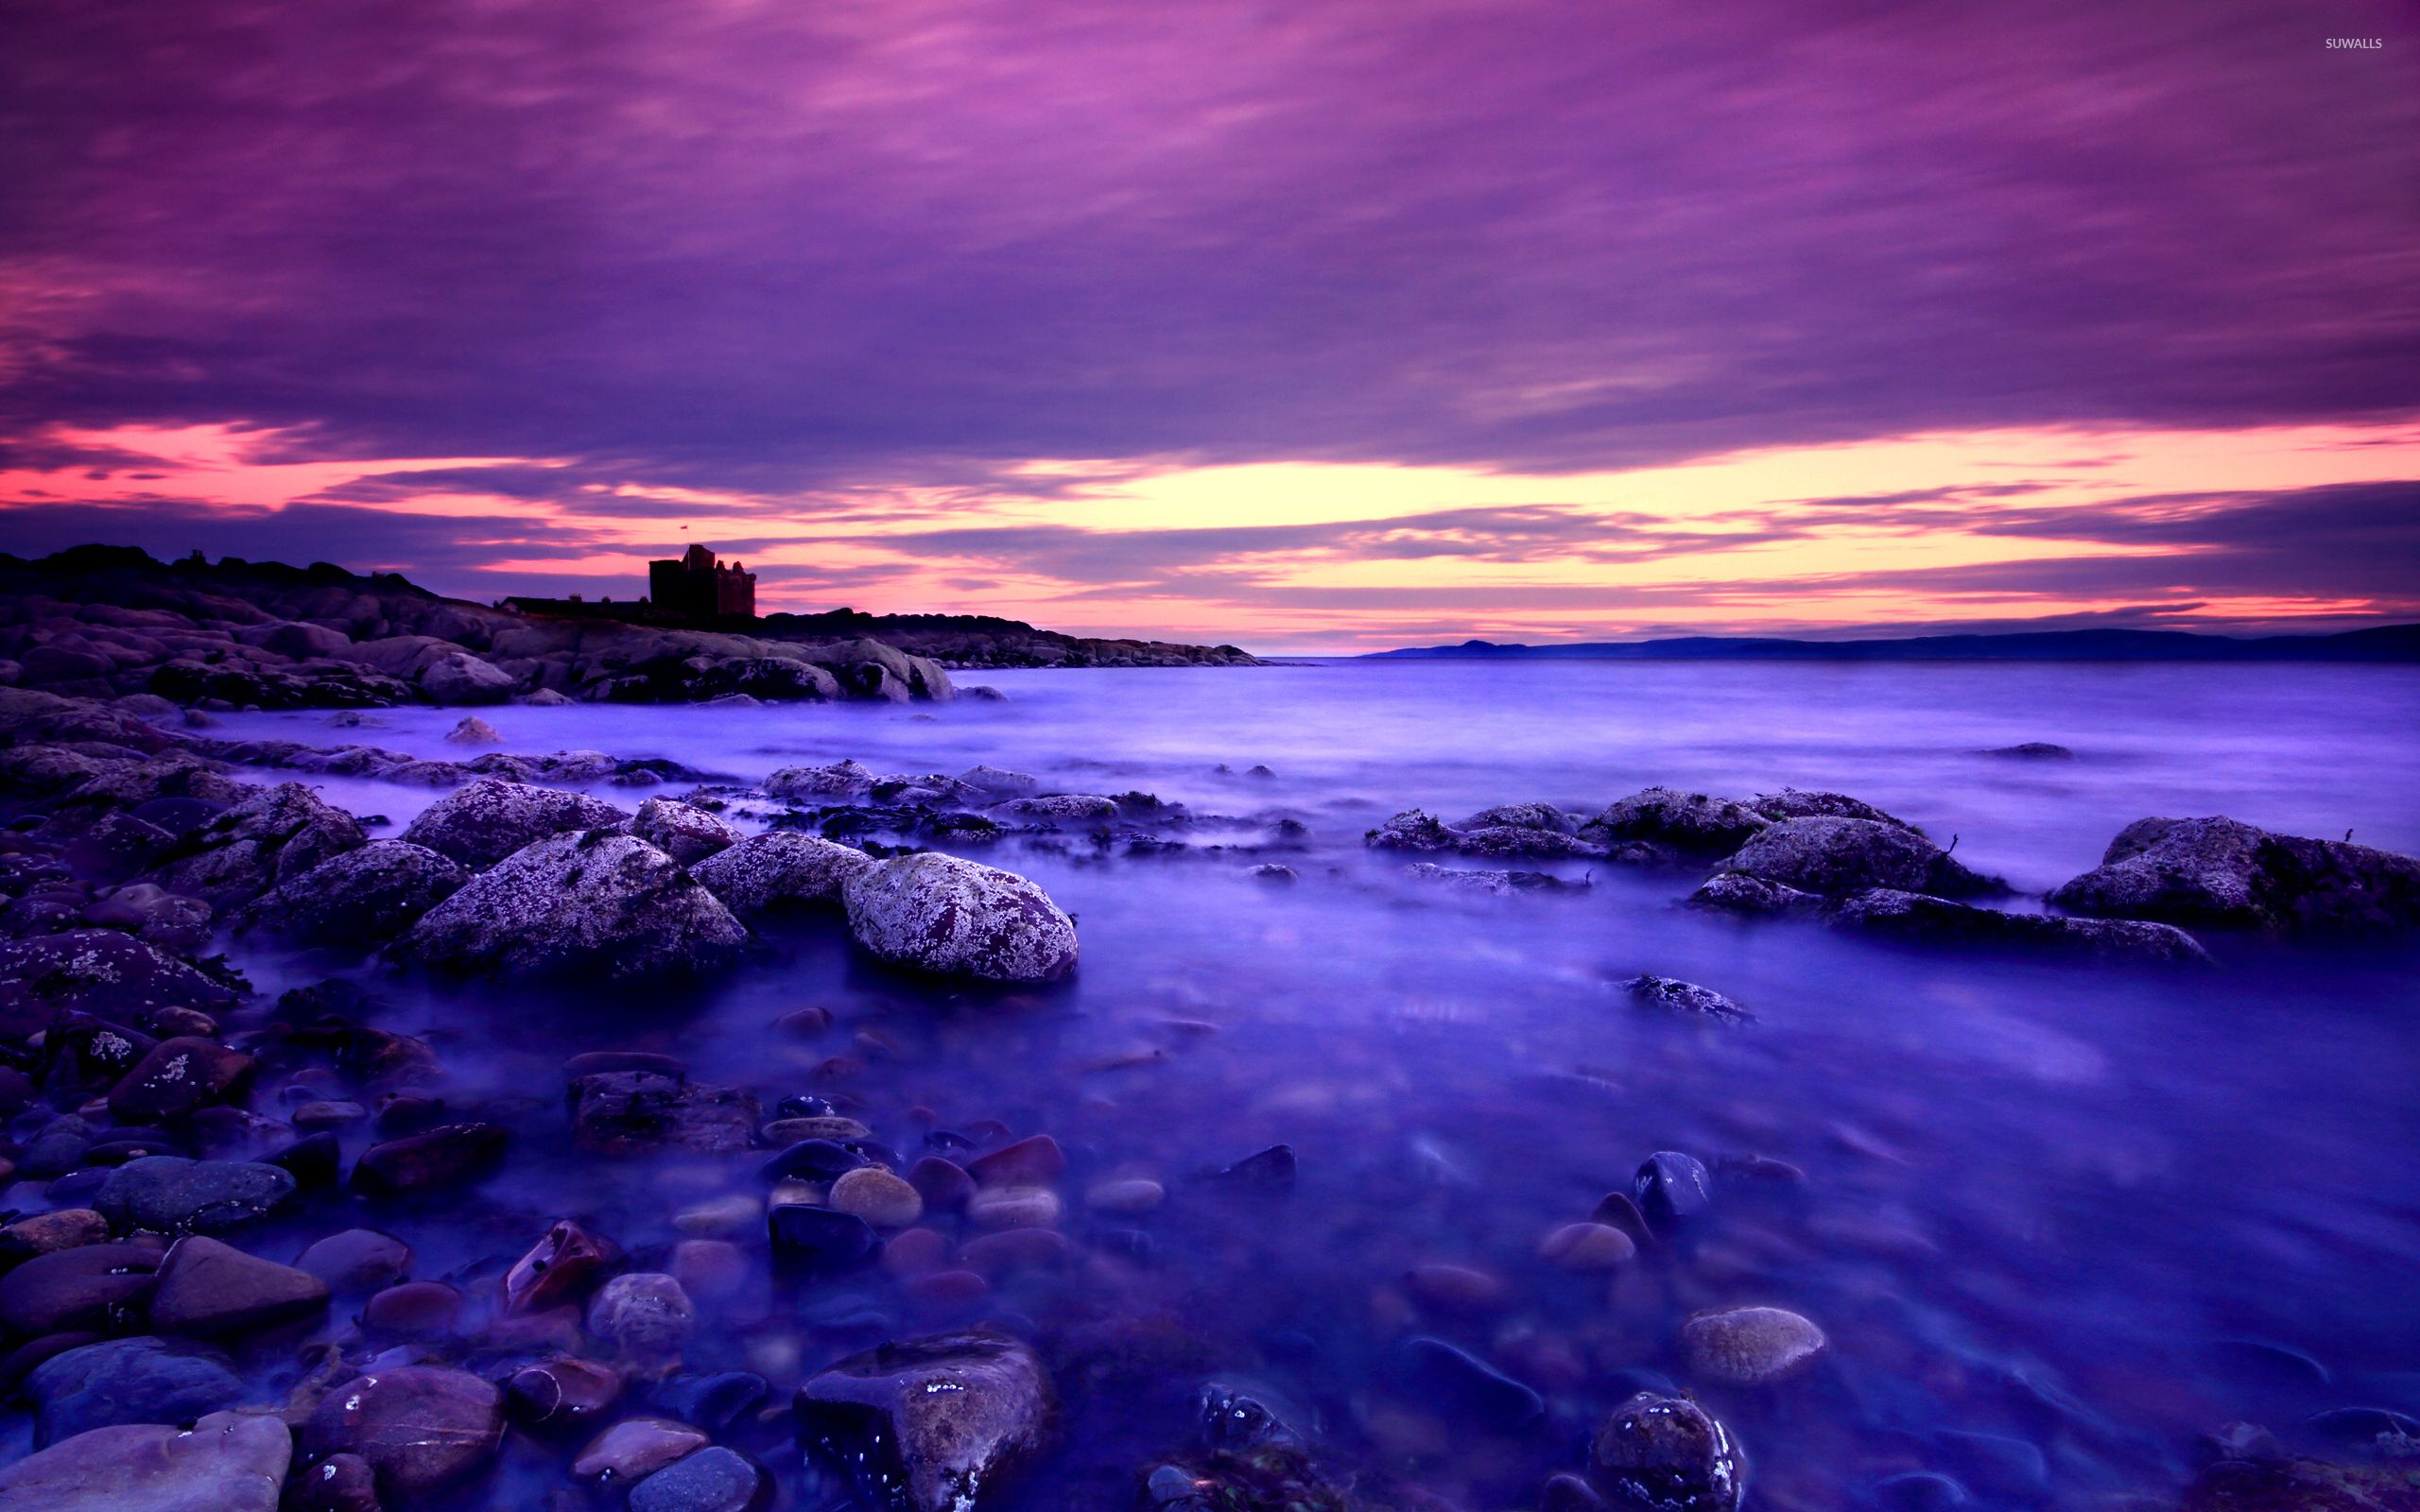 Download free purple sunset wallpapers for your mobile